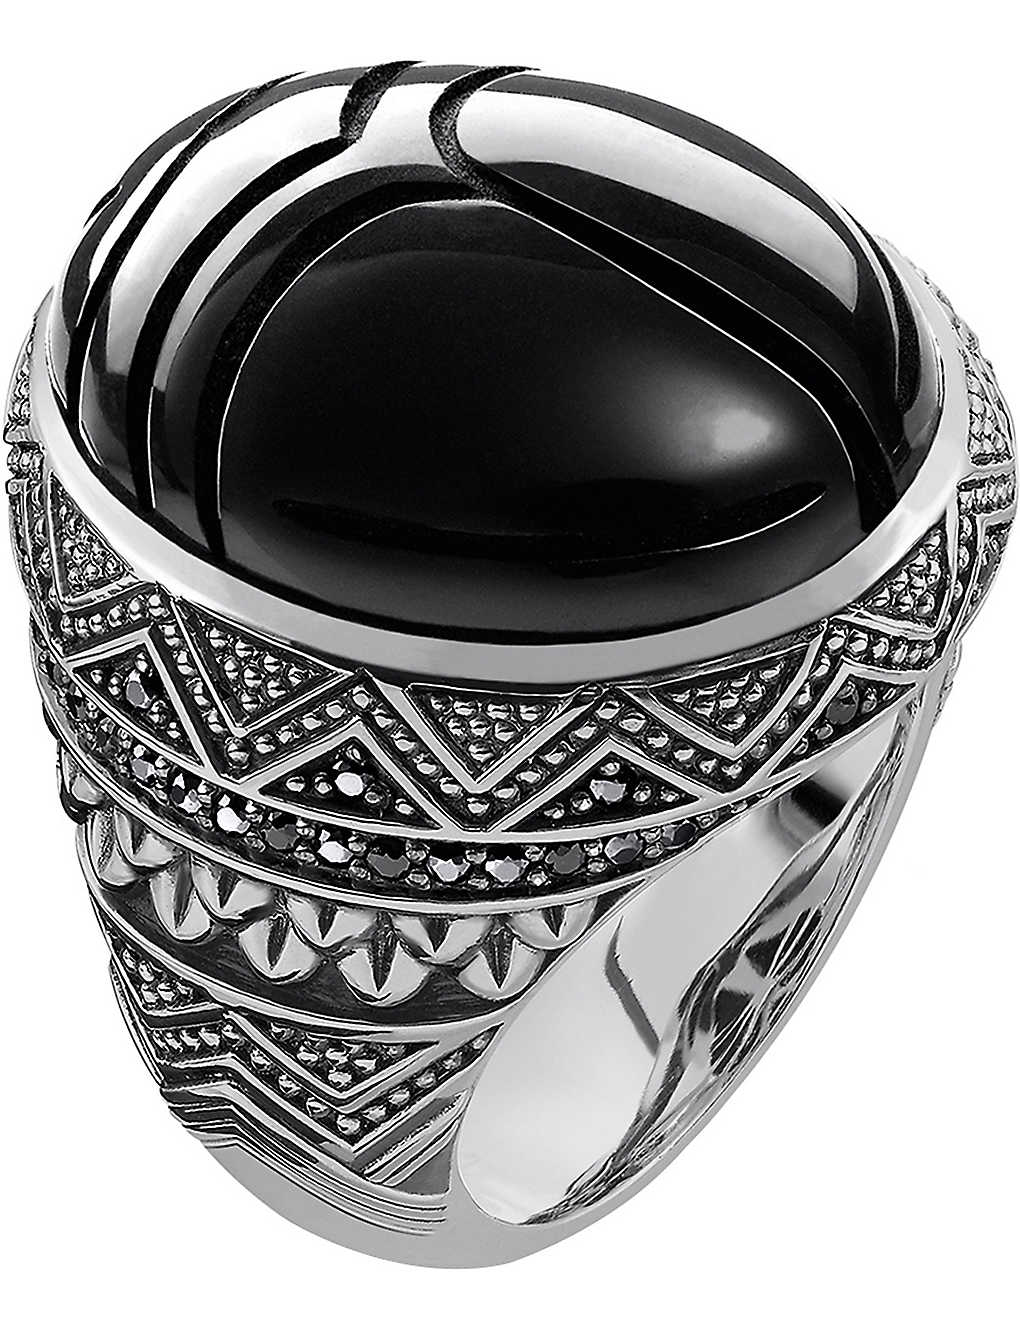 THOMAS SABO: Scarab sterling silver ring